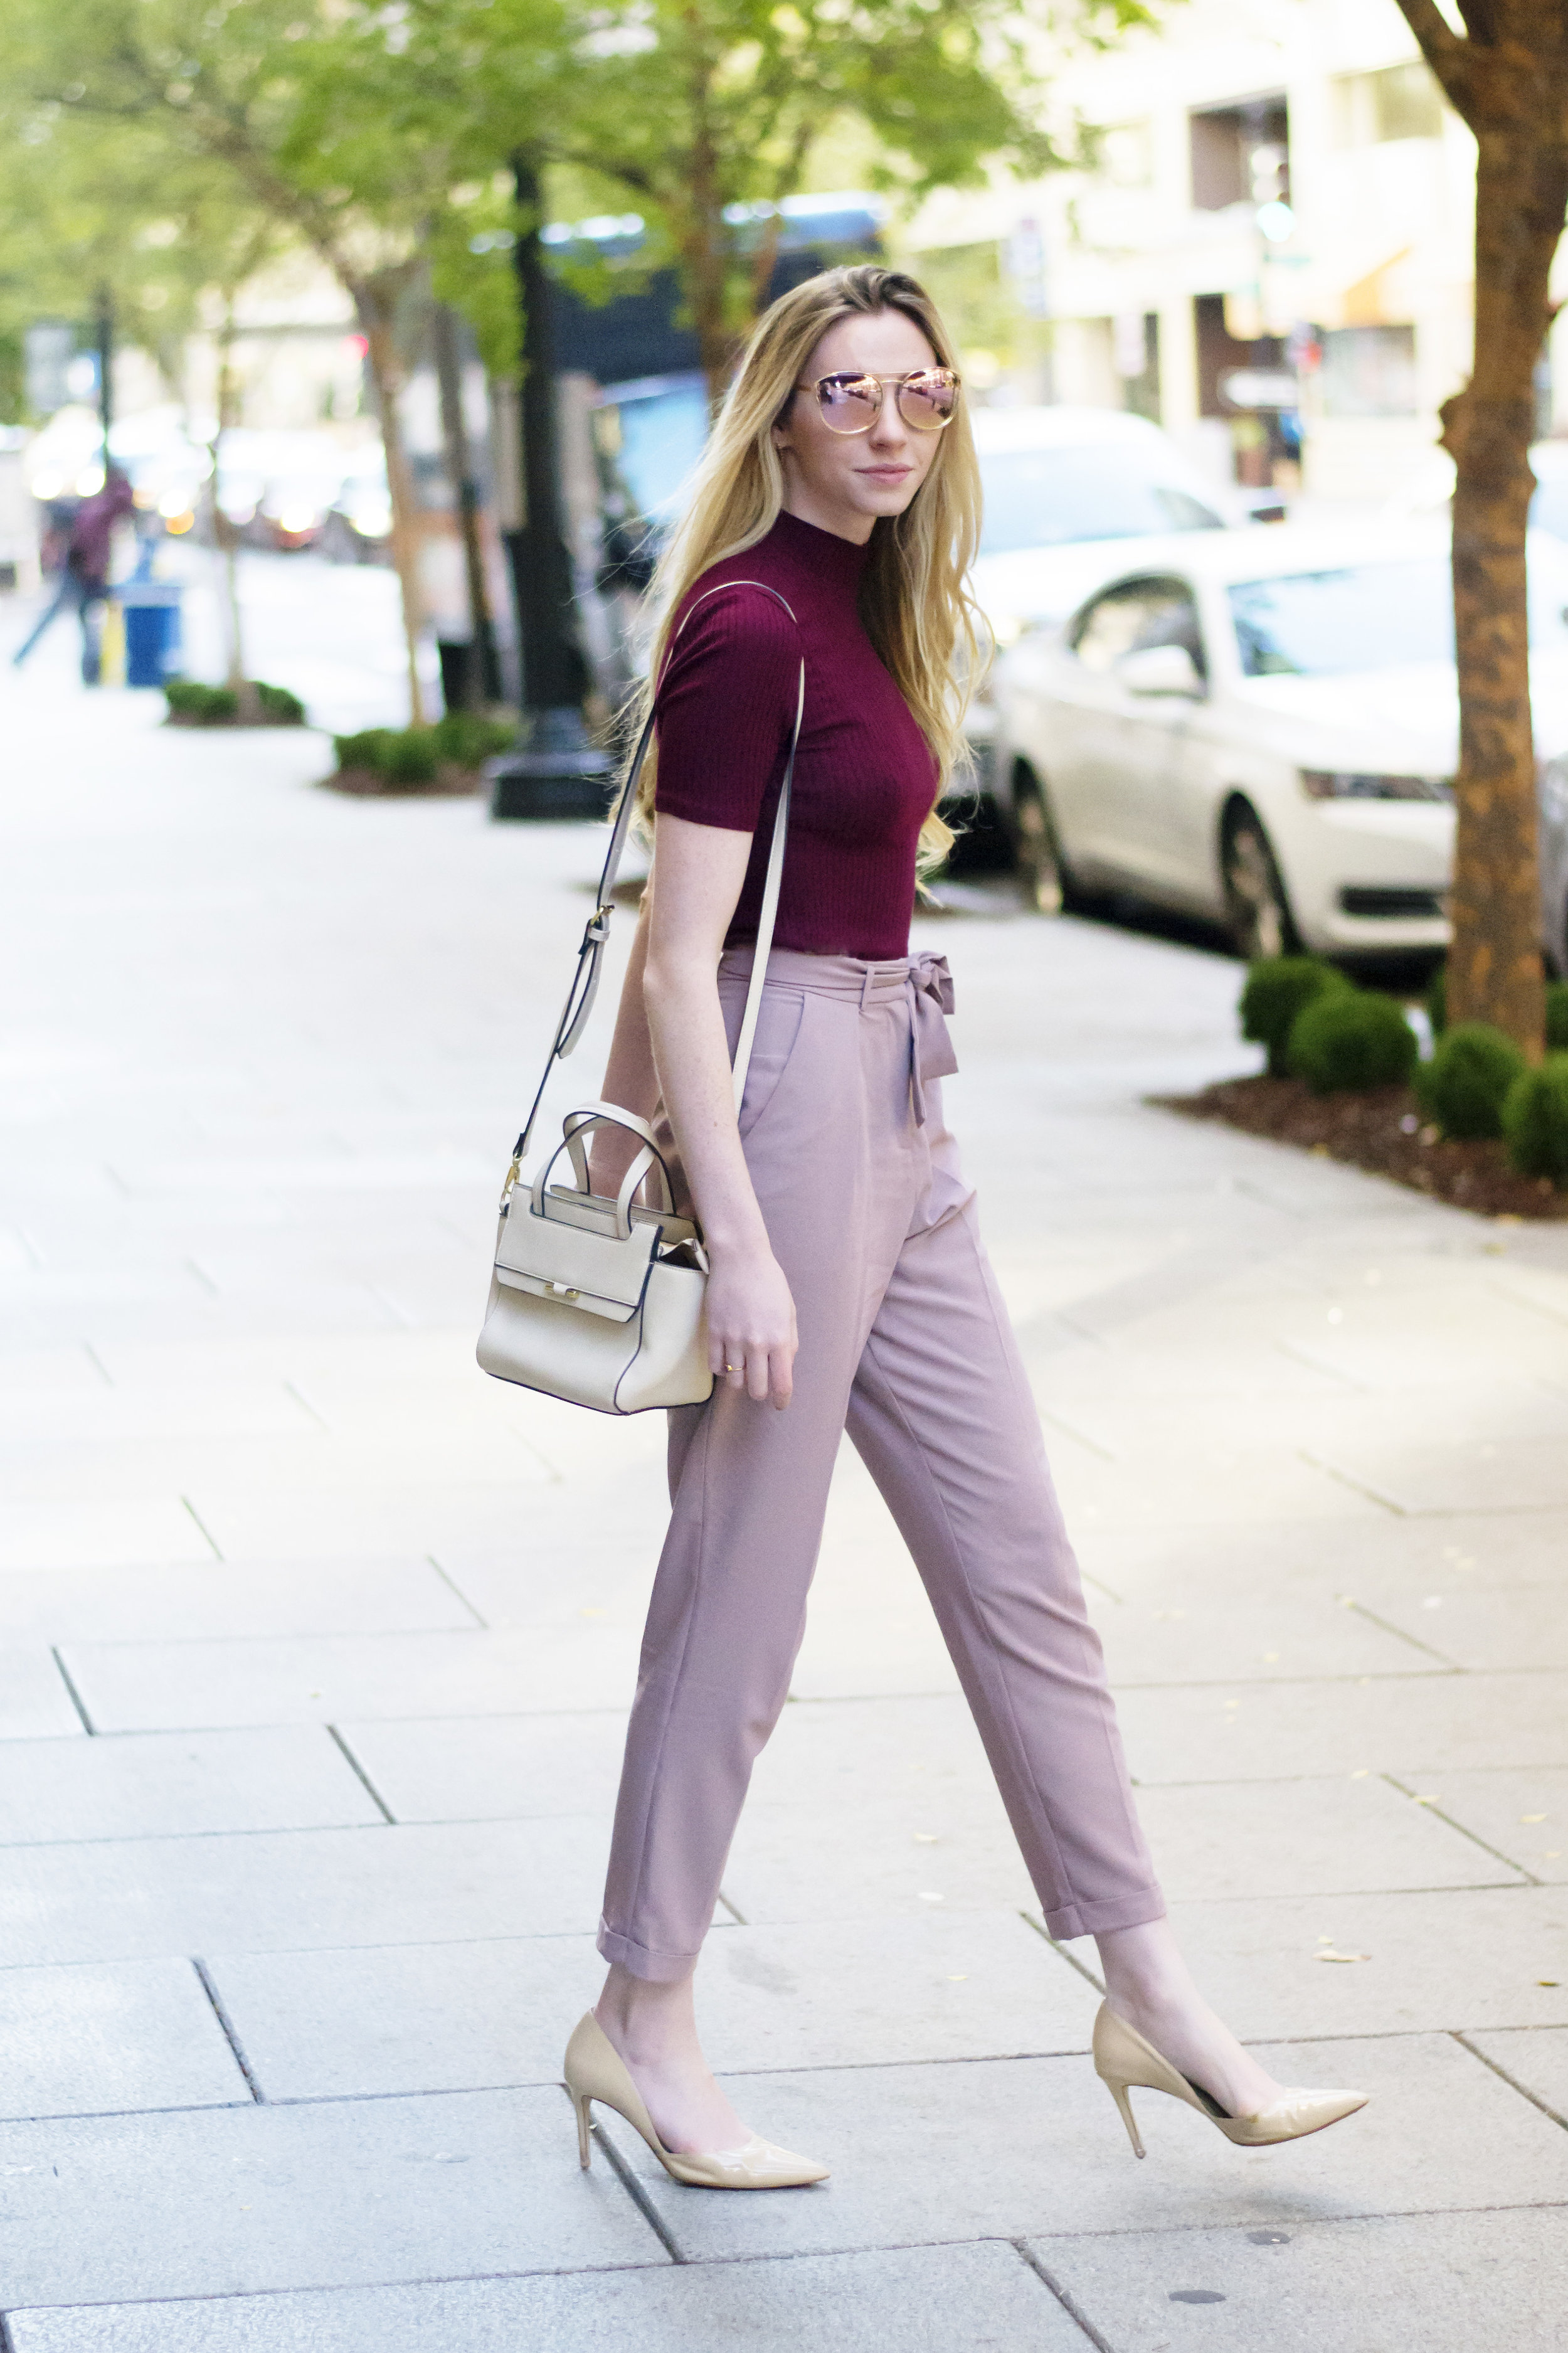 Fall Street Style (via Chic Now)